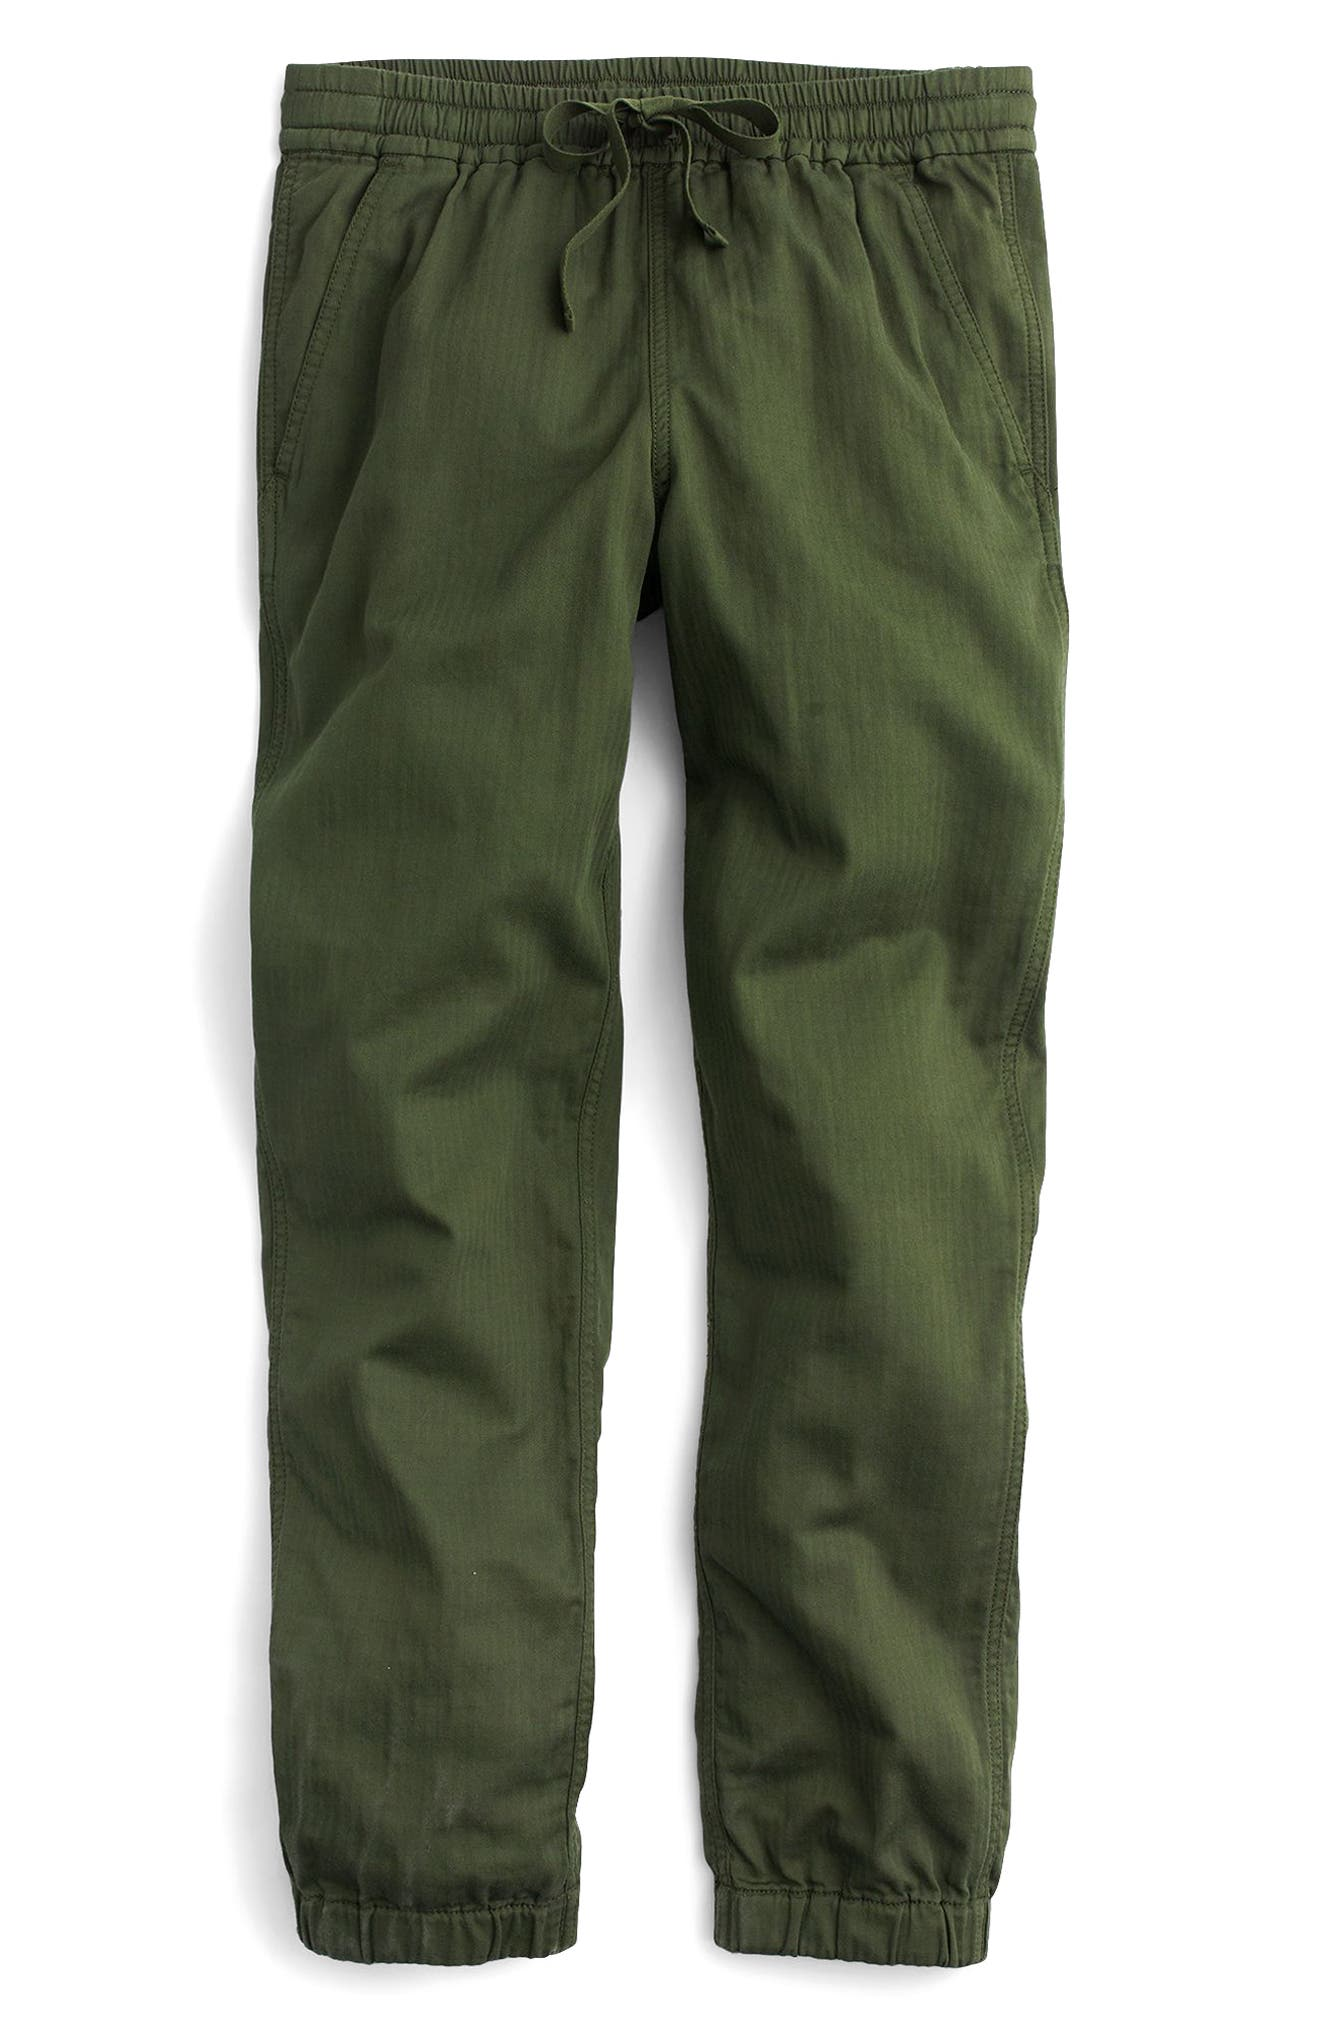 Alternate Image 3  - J.Crew Galicia Pull-On Cargo Pants (Regular & Petite)